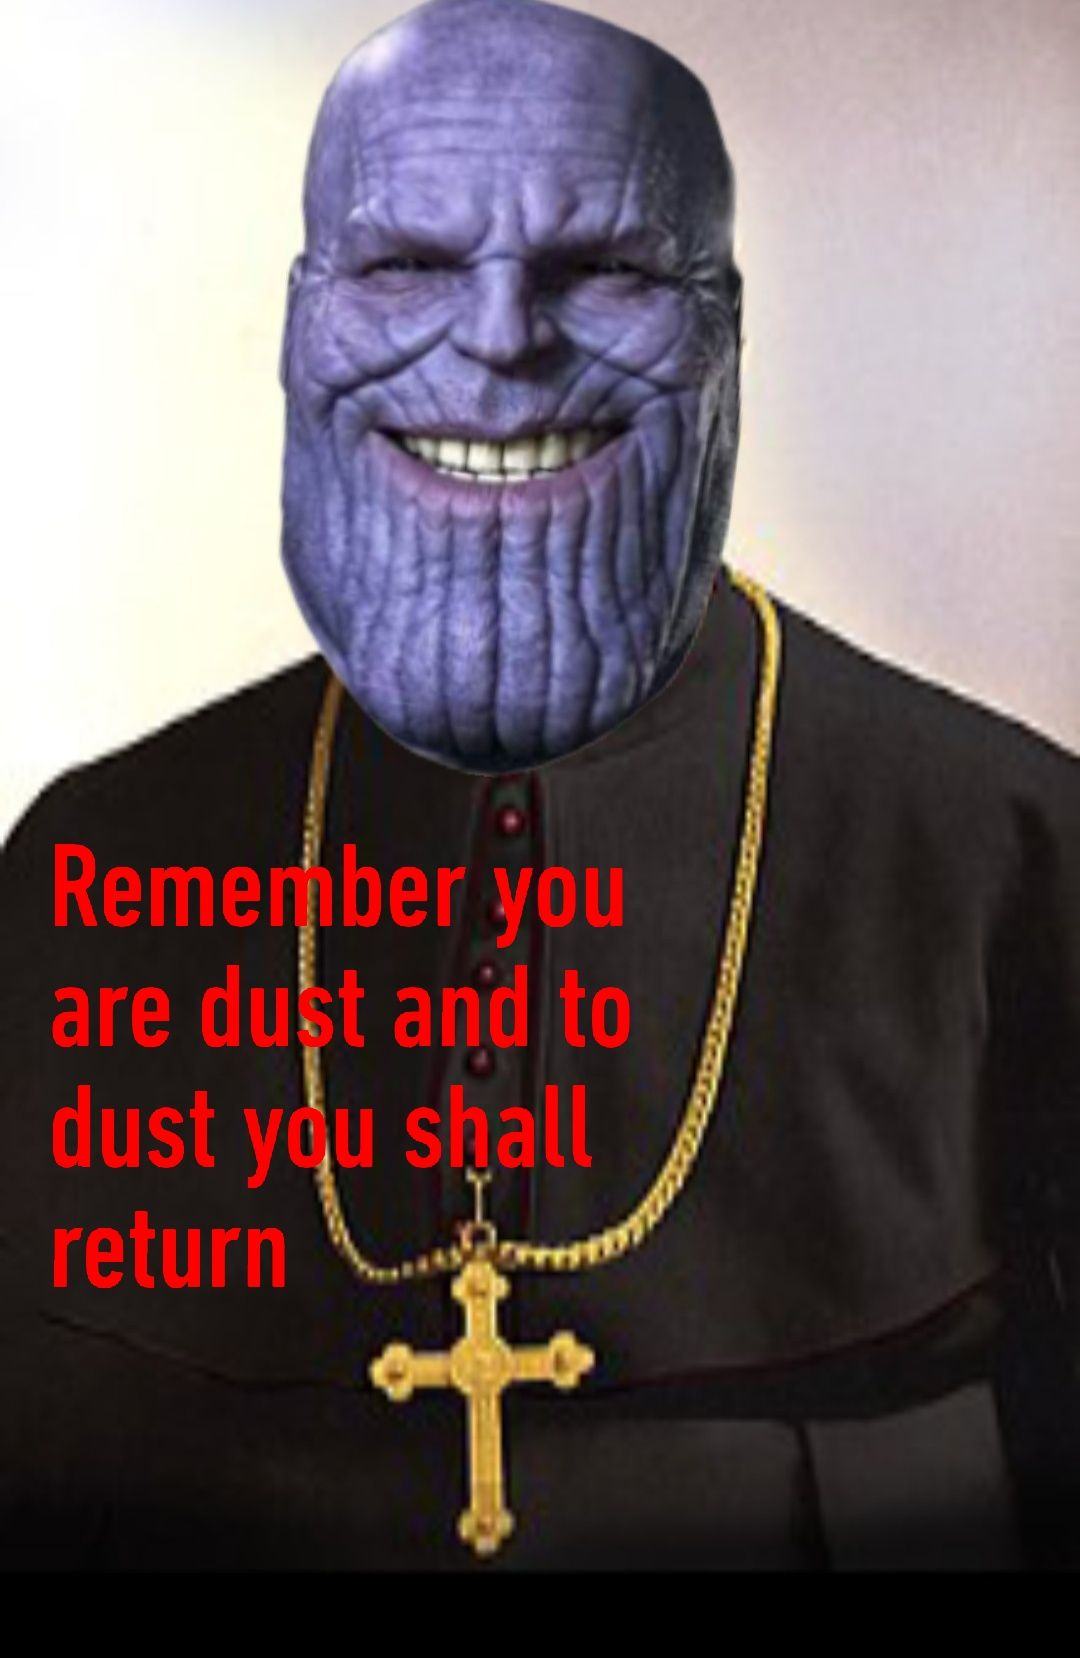 If you are looking for Ash Wednesday Meme 2020, then it is